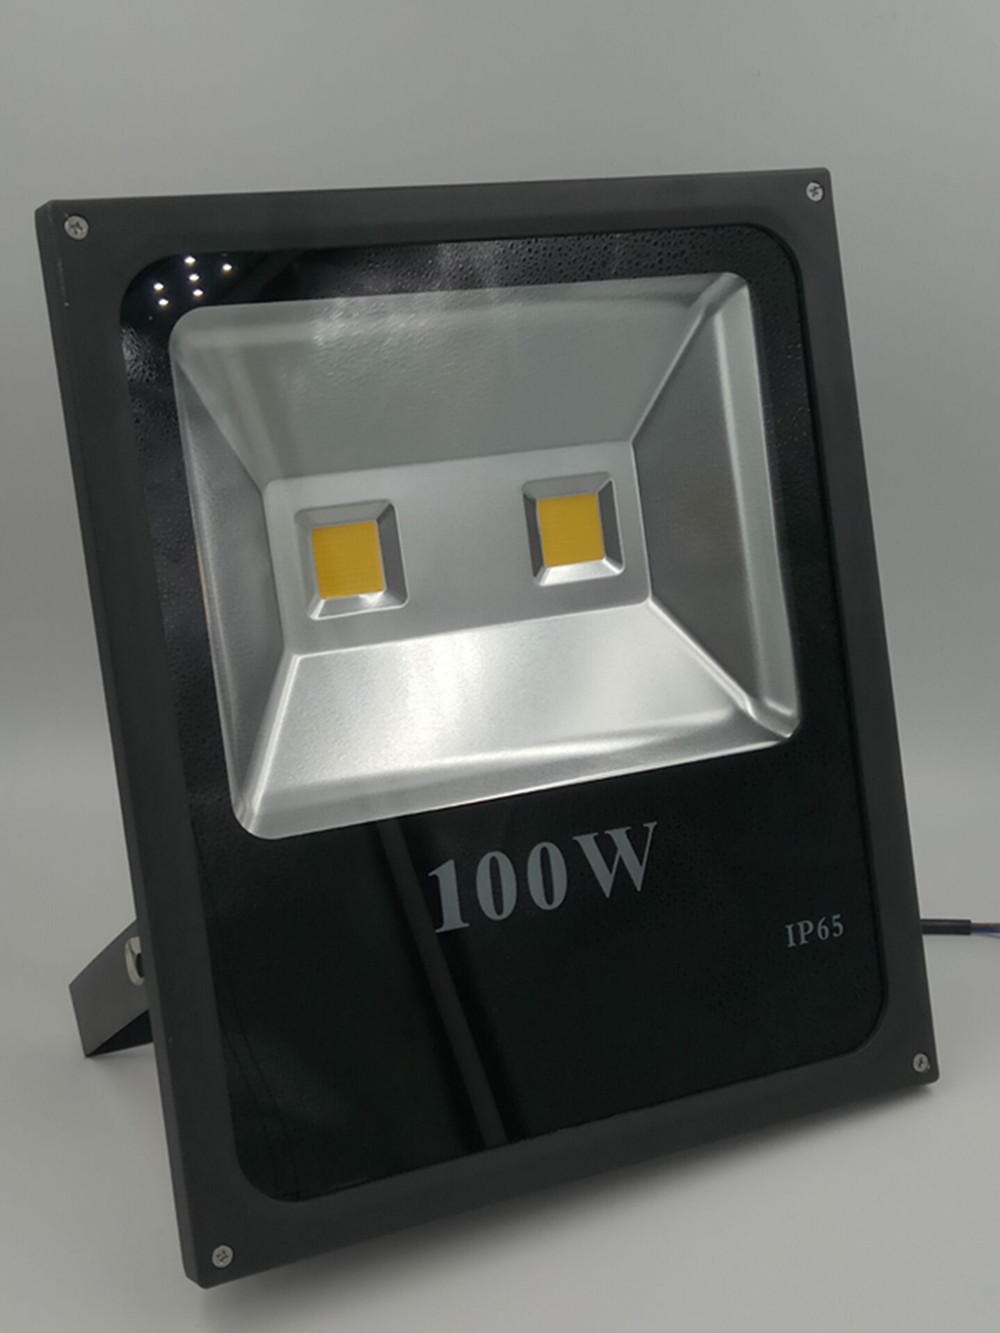 online buy wholesale 100 watt led flood light from china 100 watt led flood light wholesalers. Black Bedroom Furniture Sets. Home Design Ideas